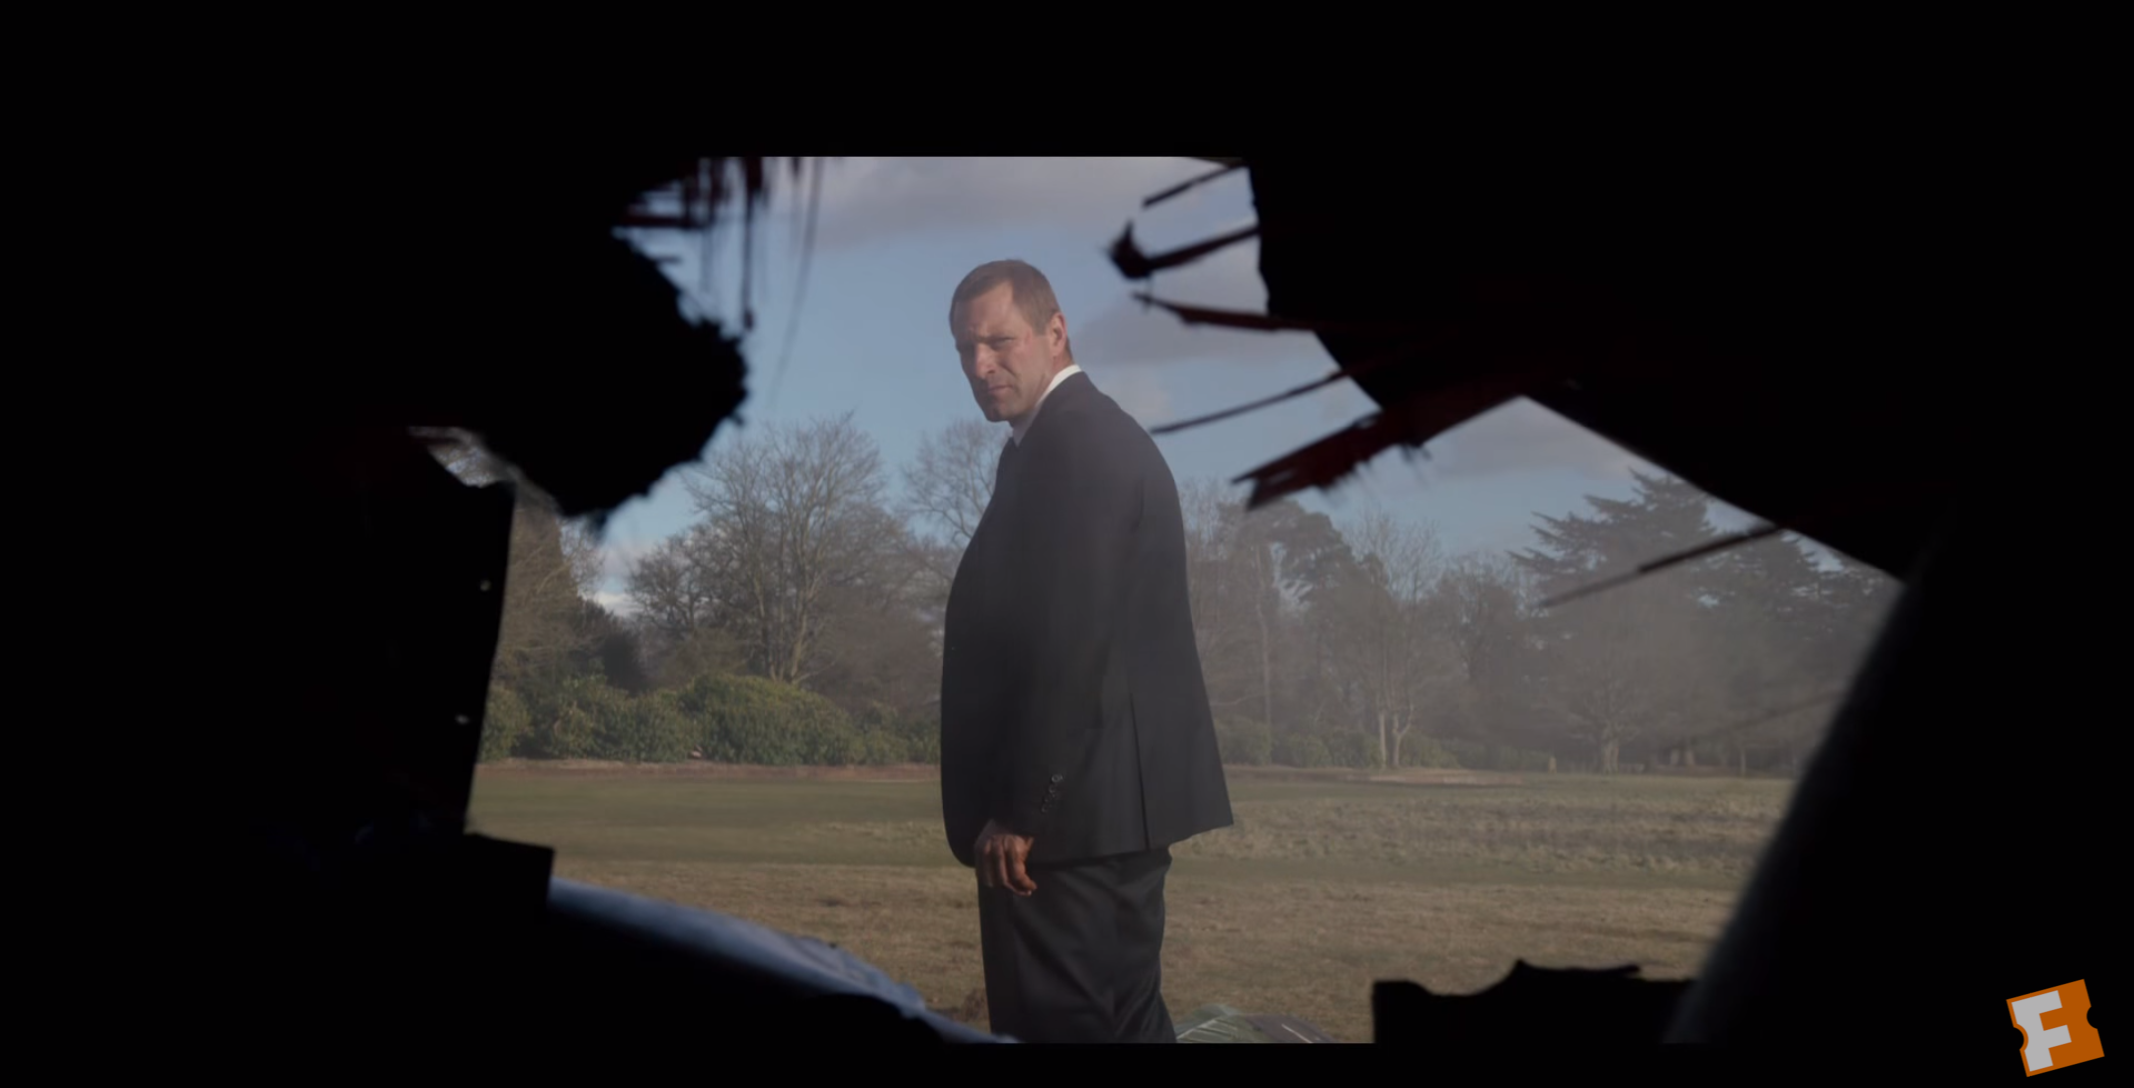 The Trailer For 'London Has Fallen' Is Finally Here with Gerard Butler And Morgan Freeman